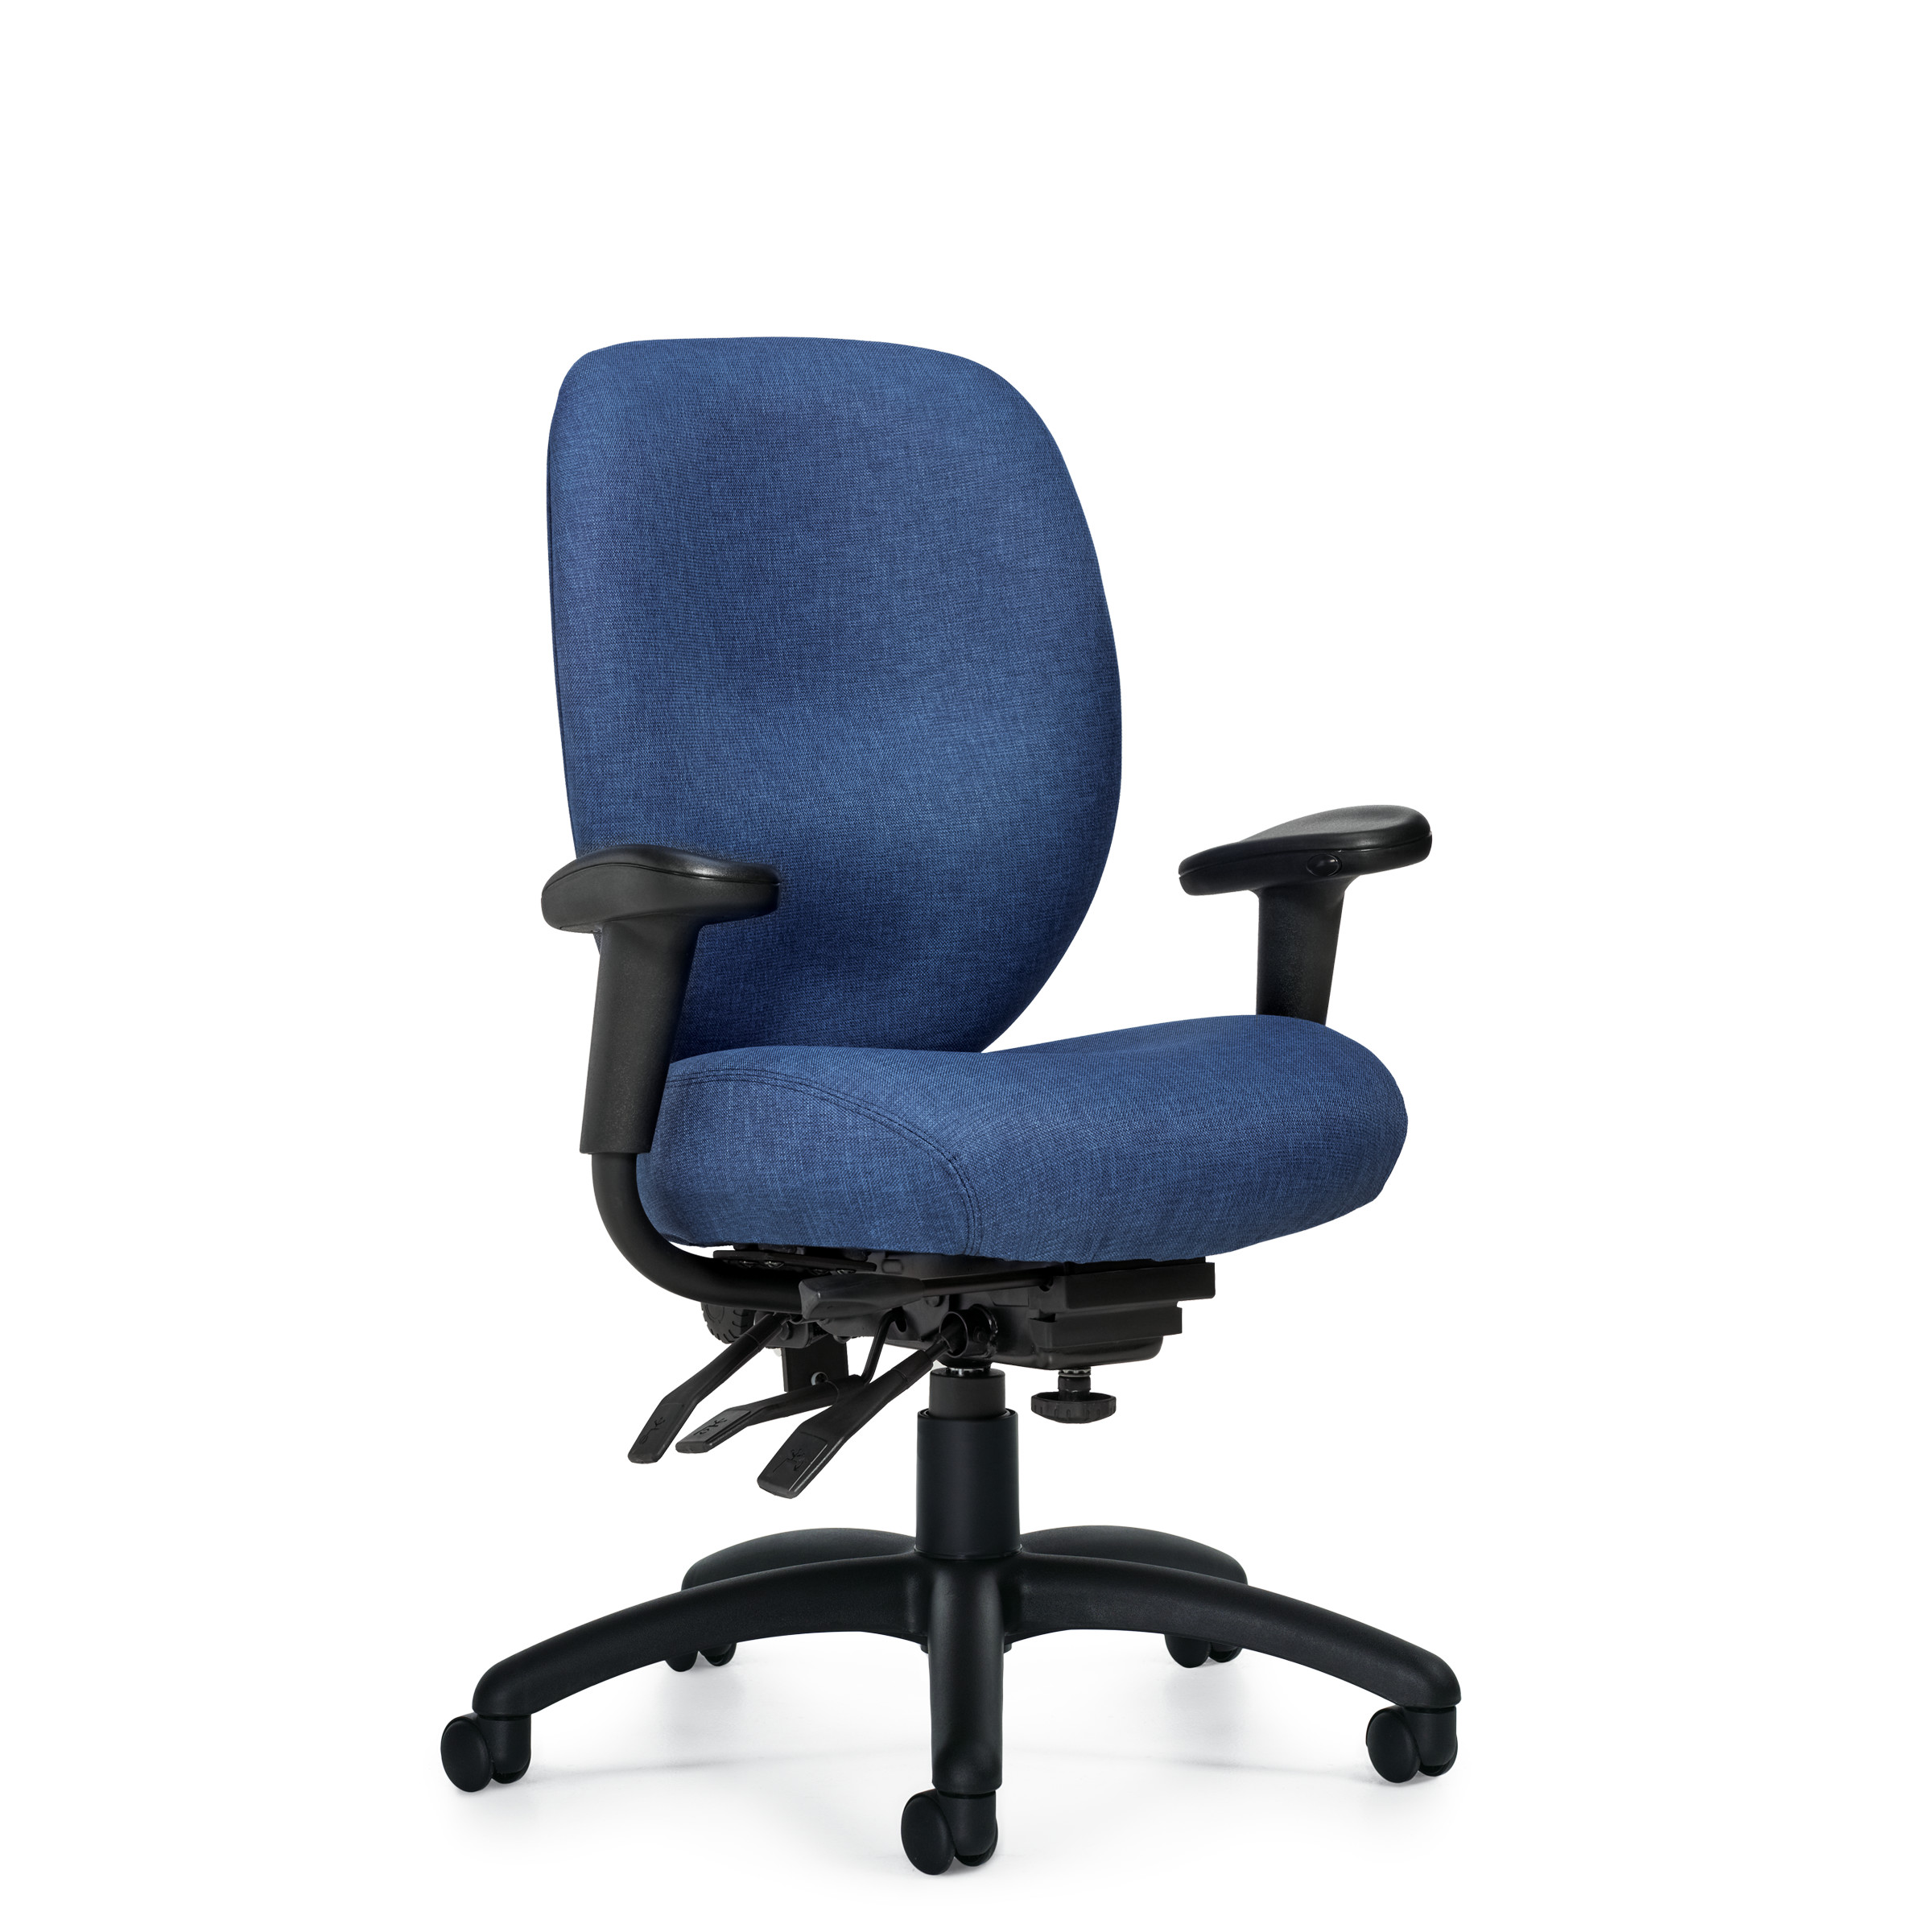 OTG Multi-Function Chair With Arms #OTG11653